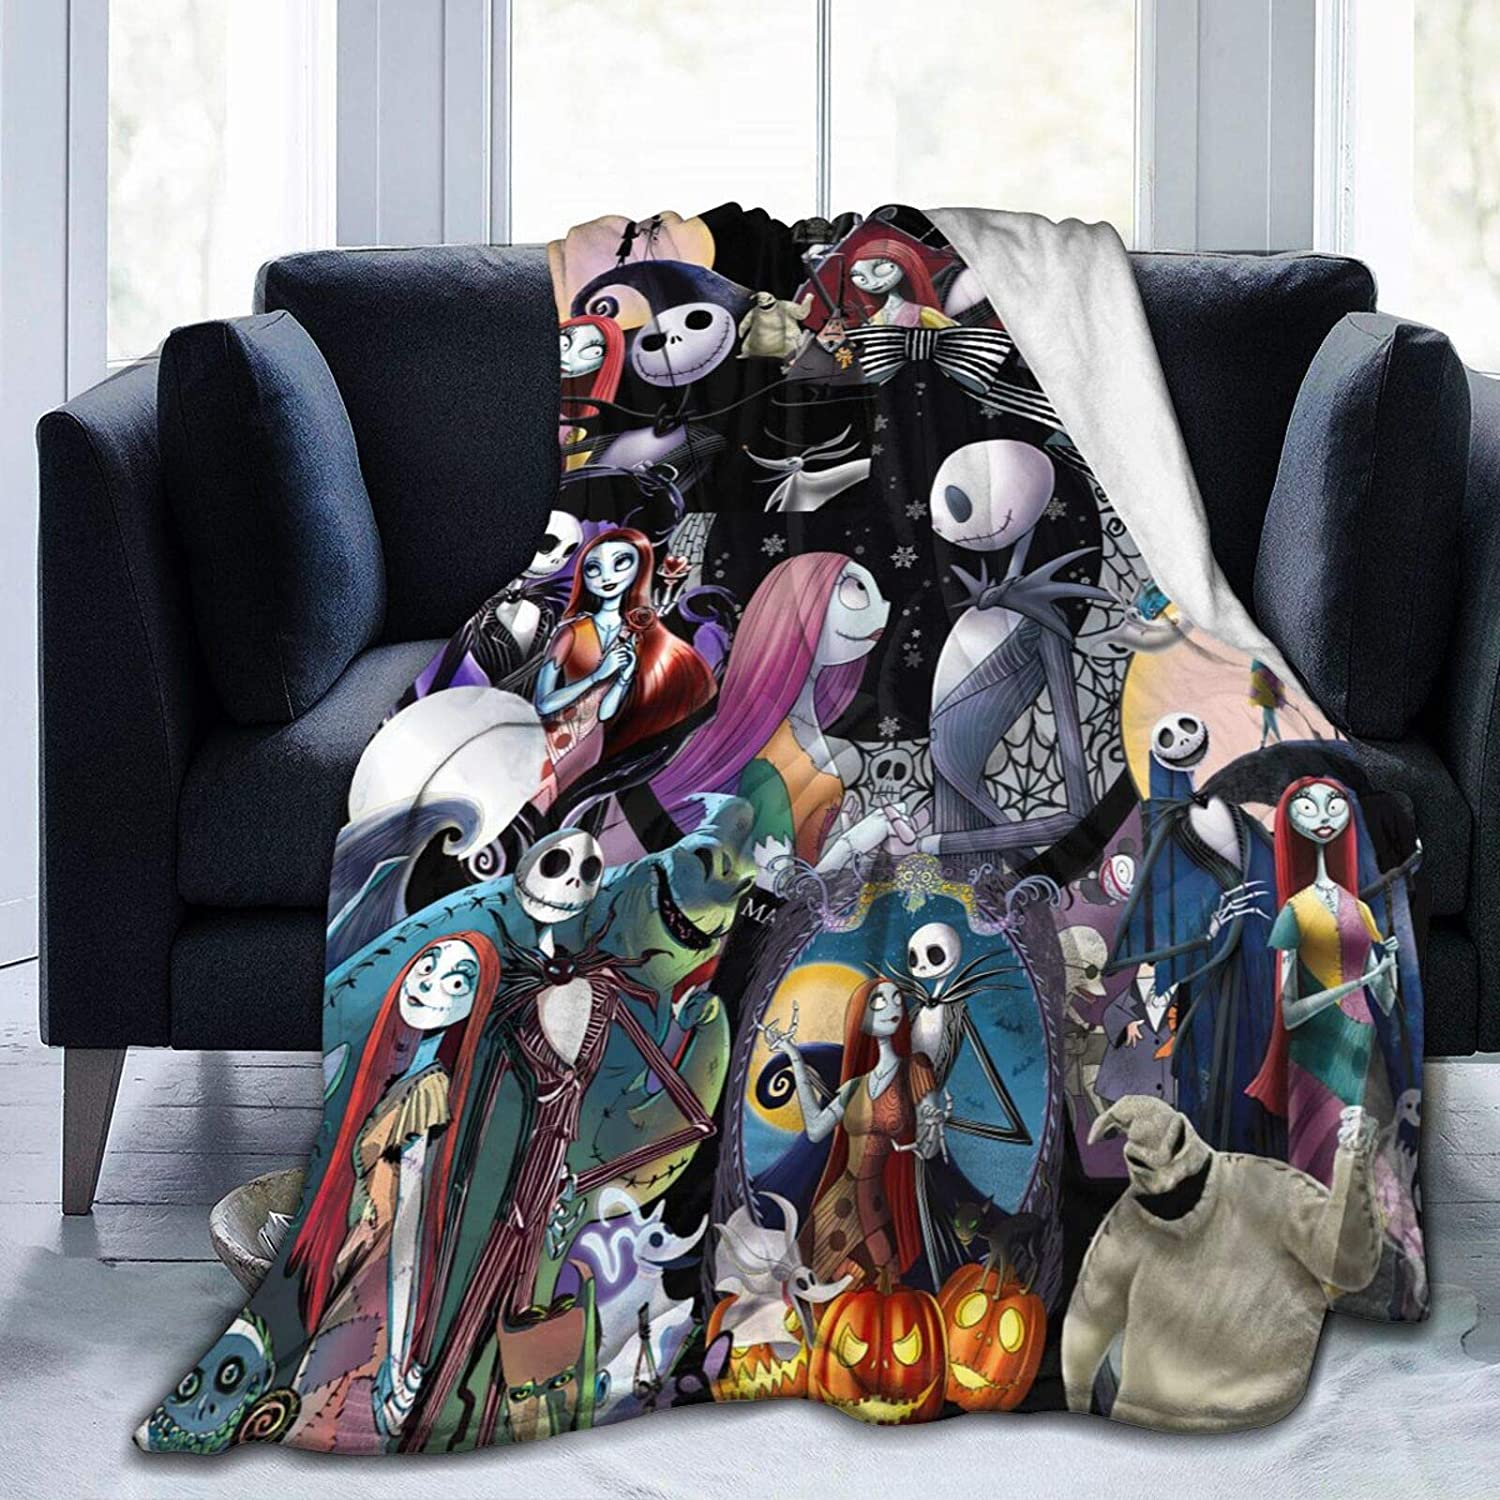 The Nightmare Before Christmas Jack And Sally Blanket Flannel Fleece Throw Blanket All Seasons Plush Fuzzy Lightweight Ultra Soft Plush Luxury Fluffy Microfiber Blanket For Bed/Sofa/Chair 40X50inch